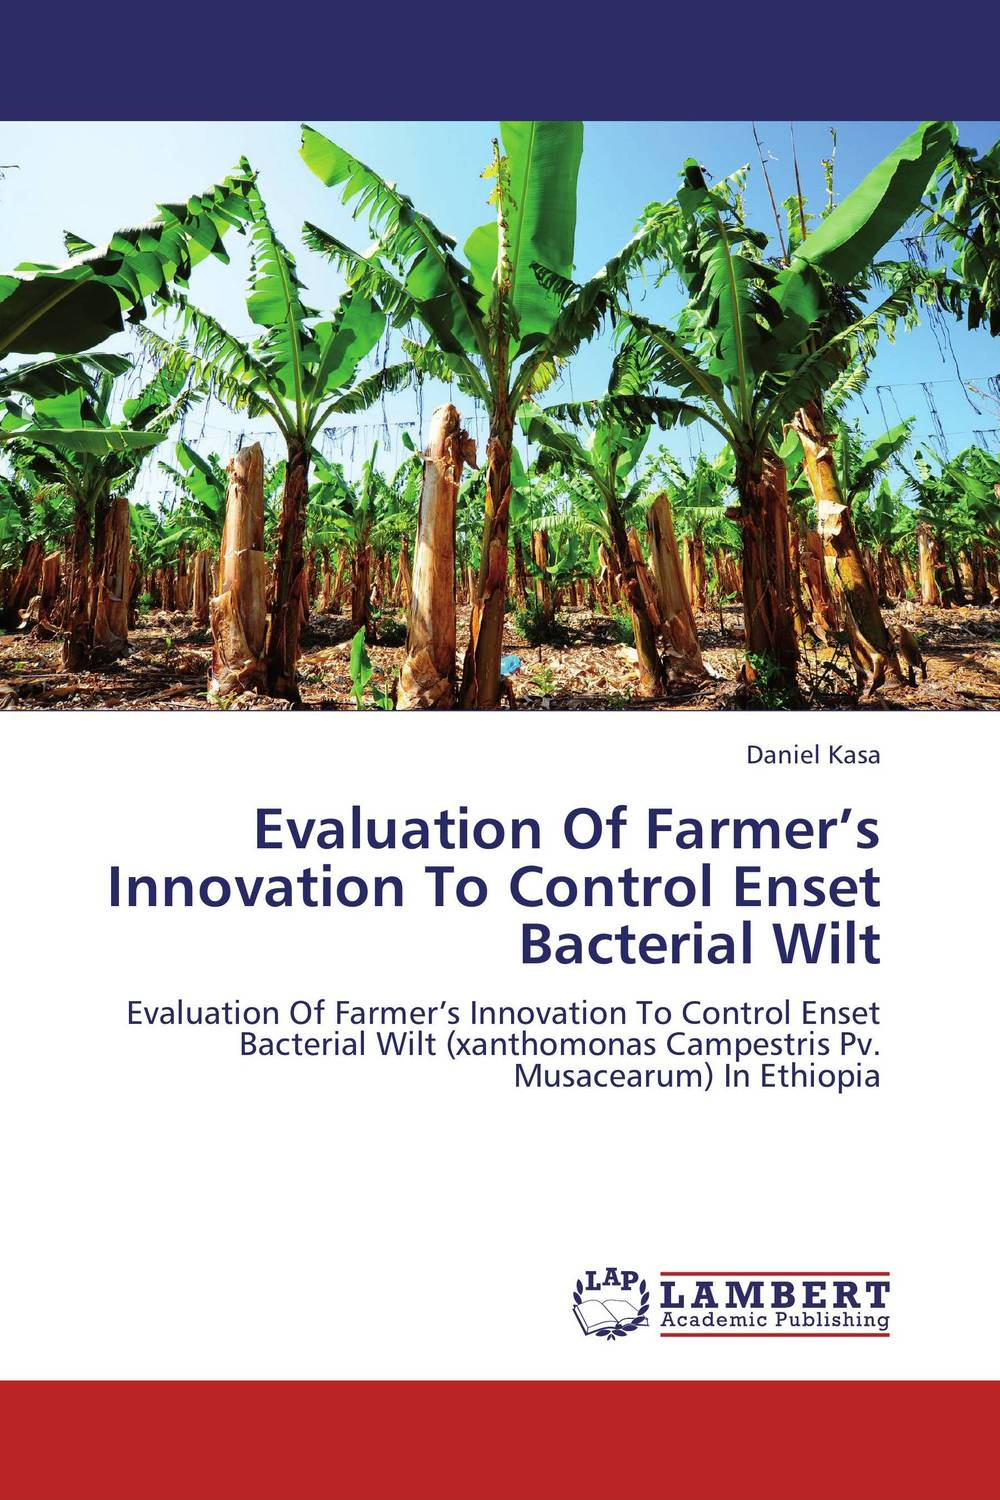 Evaluation Of Farmer's Innovation To Control Enset Bacterial Wilt improved expression of bacterial chia in plant by codon optimisation